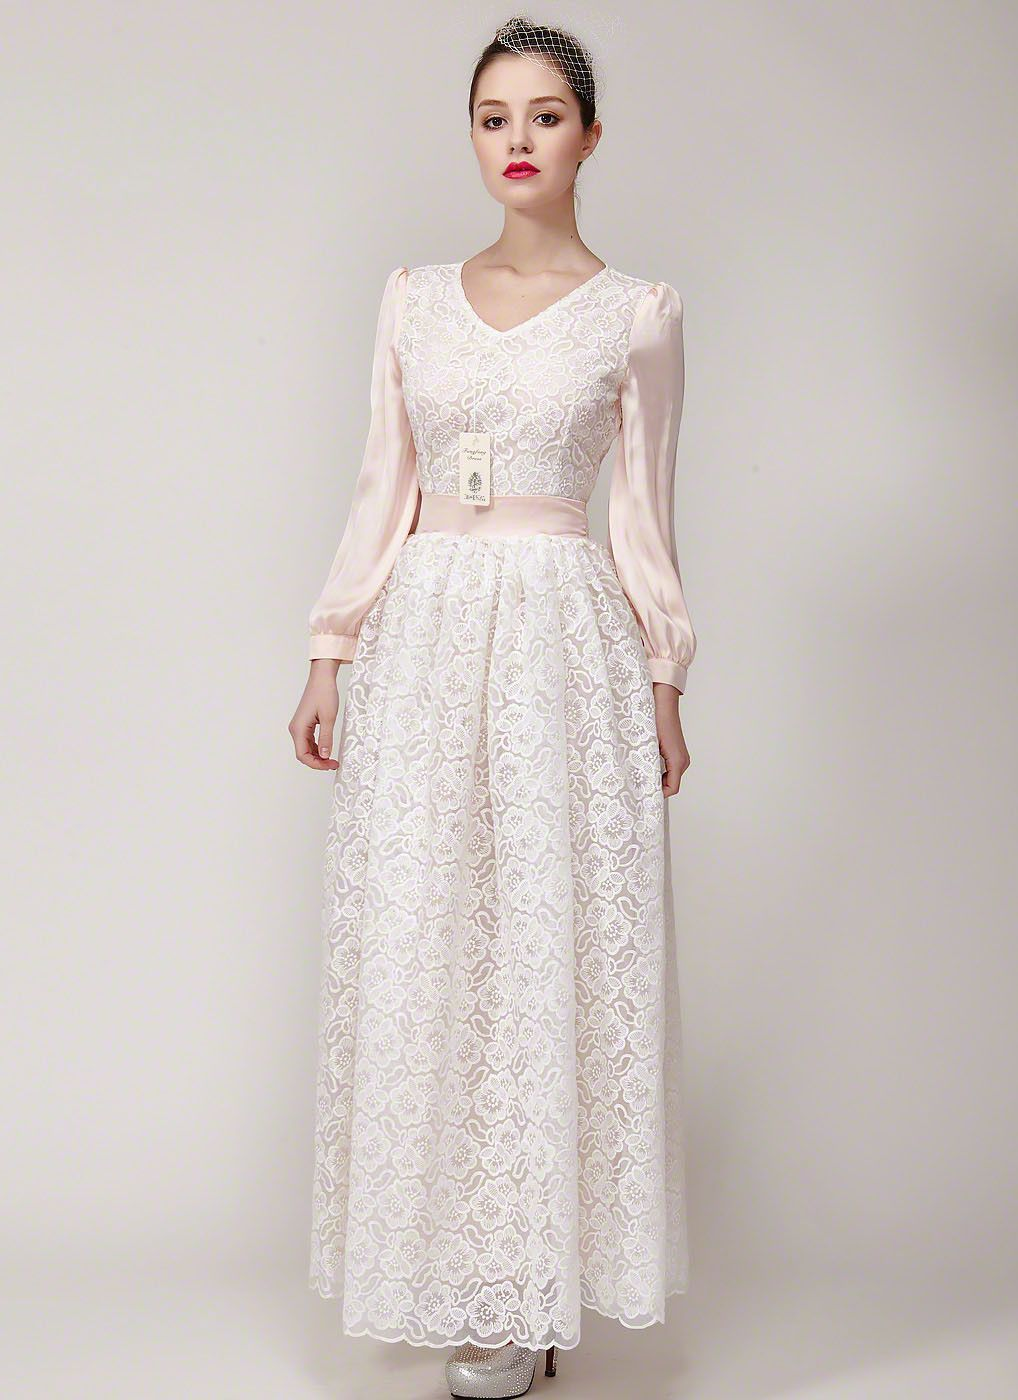 White organza embroidered lace maxi dress with nude pink sleeves and